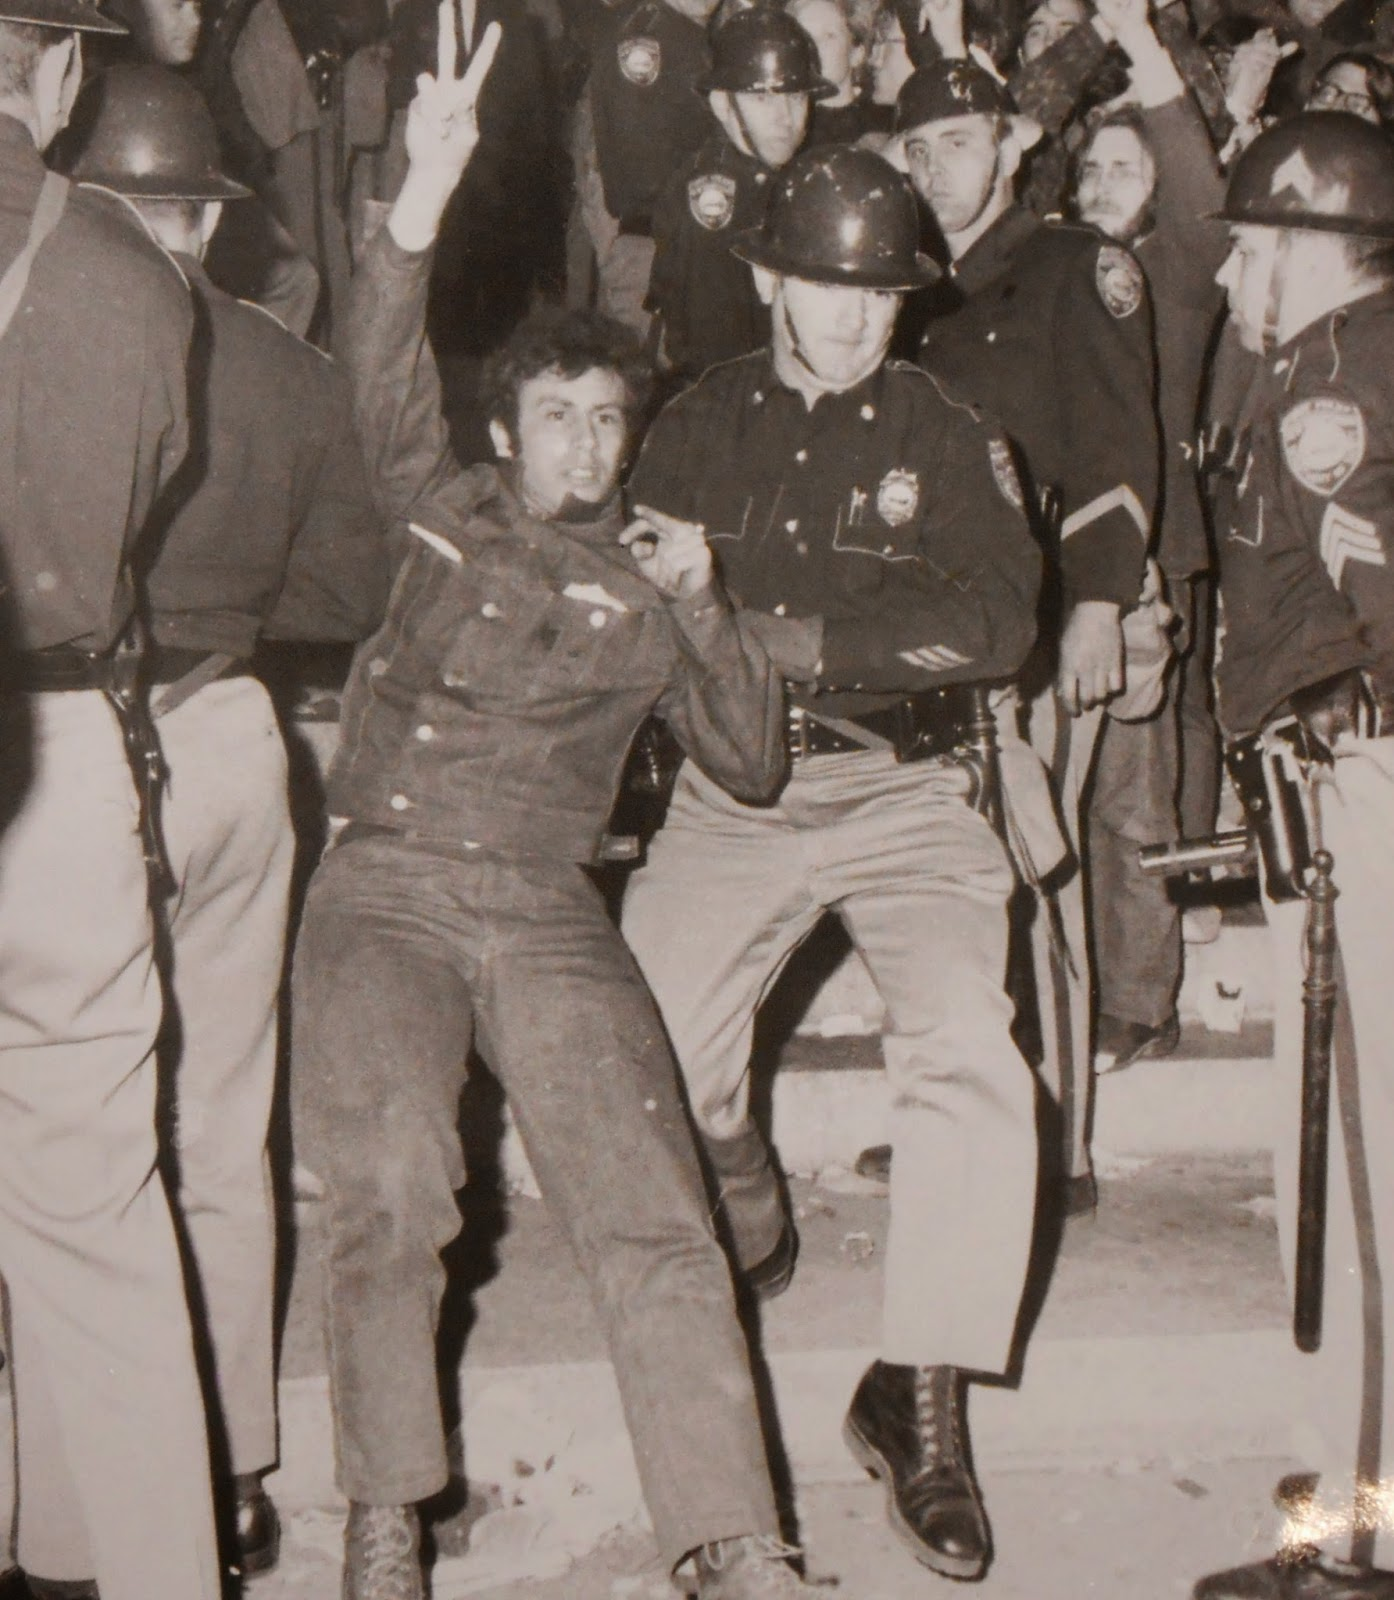 A black and white photograph of a young man being grabbed by a policeman as he throws up a peace sign.